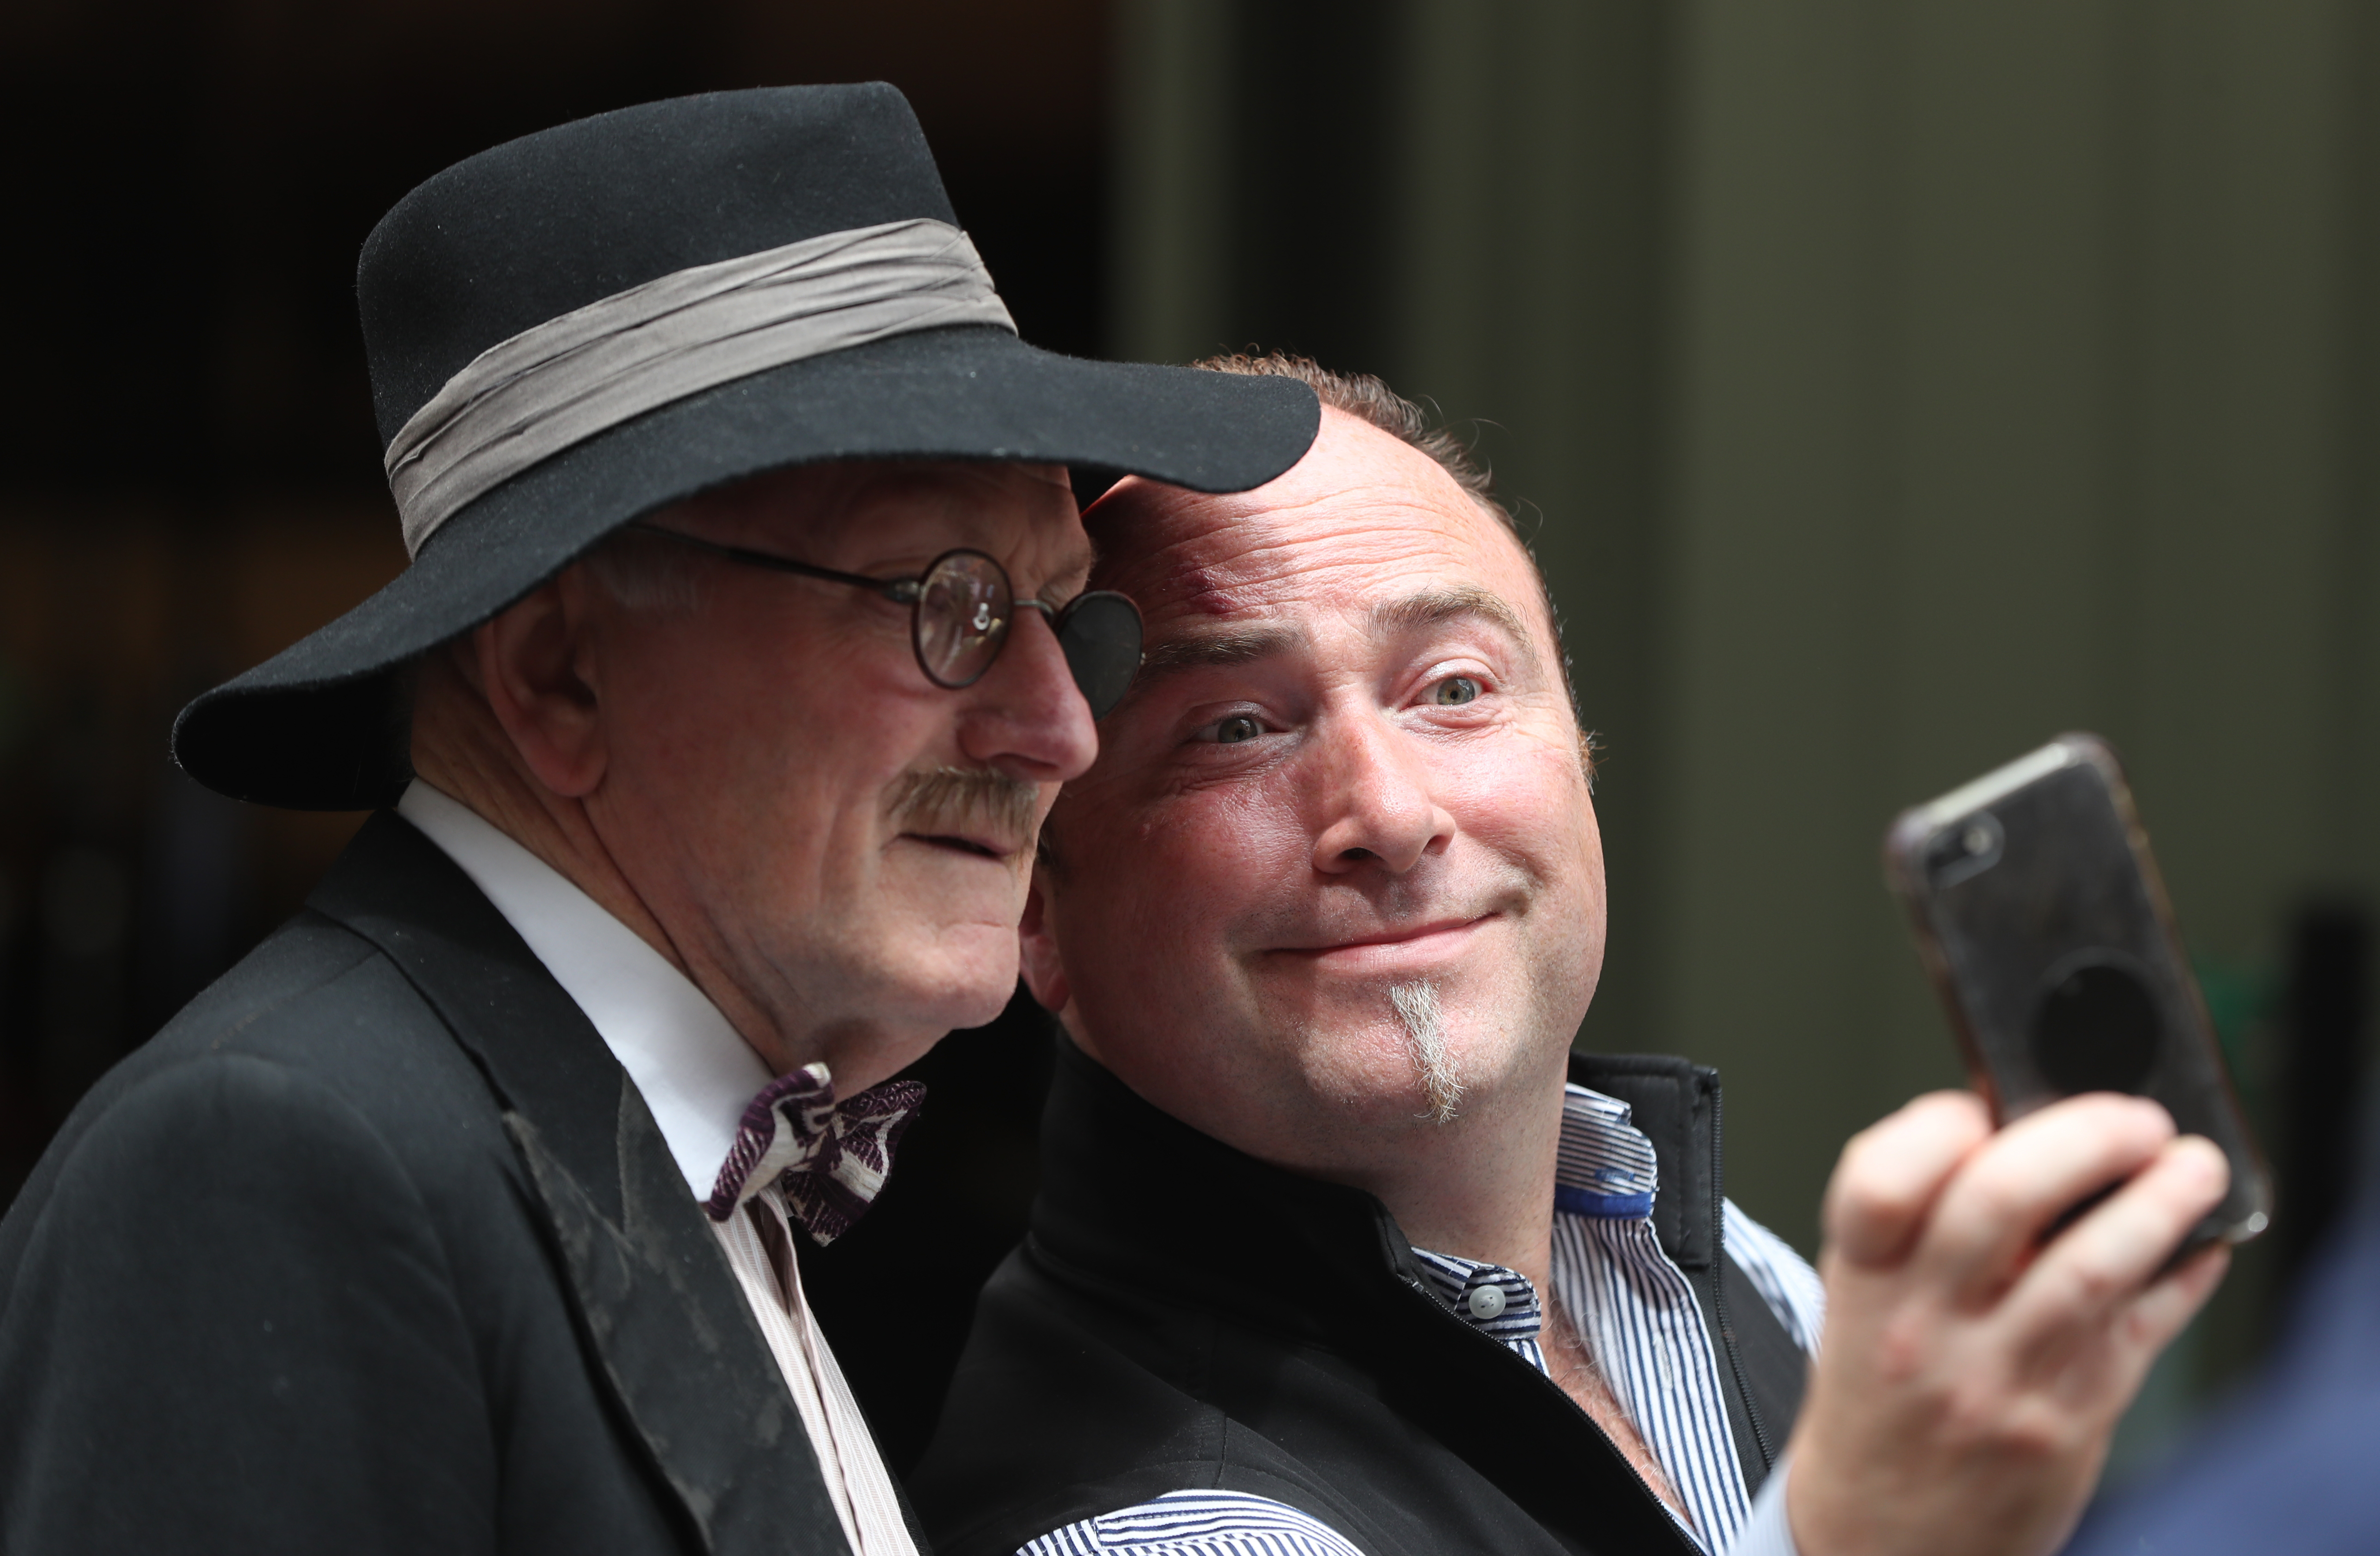 <p>A man takes a selfie with James Joyce impersonator Dermod Lynskey celebrating Bloomsday in Duke Street Dublin. Picture date: Wednesday June 16, 2021. Bloomsday is a celebration of the life of Irish writer James Joyce, observed annually worldwide on June 16, the day his 1922 novel Ulysses takes place in 1904, the date of his first outing with his wife-to-be Nora Barnacle. The day is named after its protagonist Leopold Bloom. Picture date: Wednesday June 16, 2021.</p>